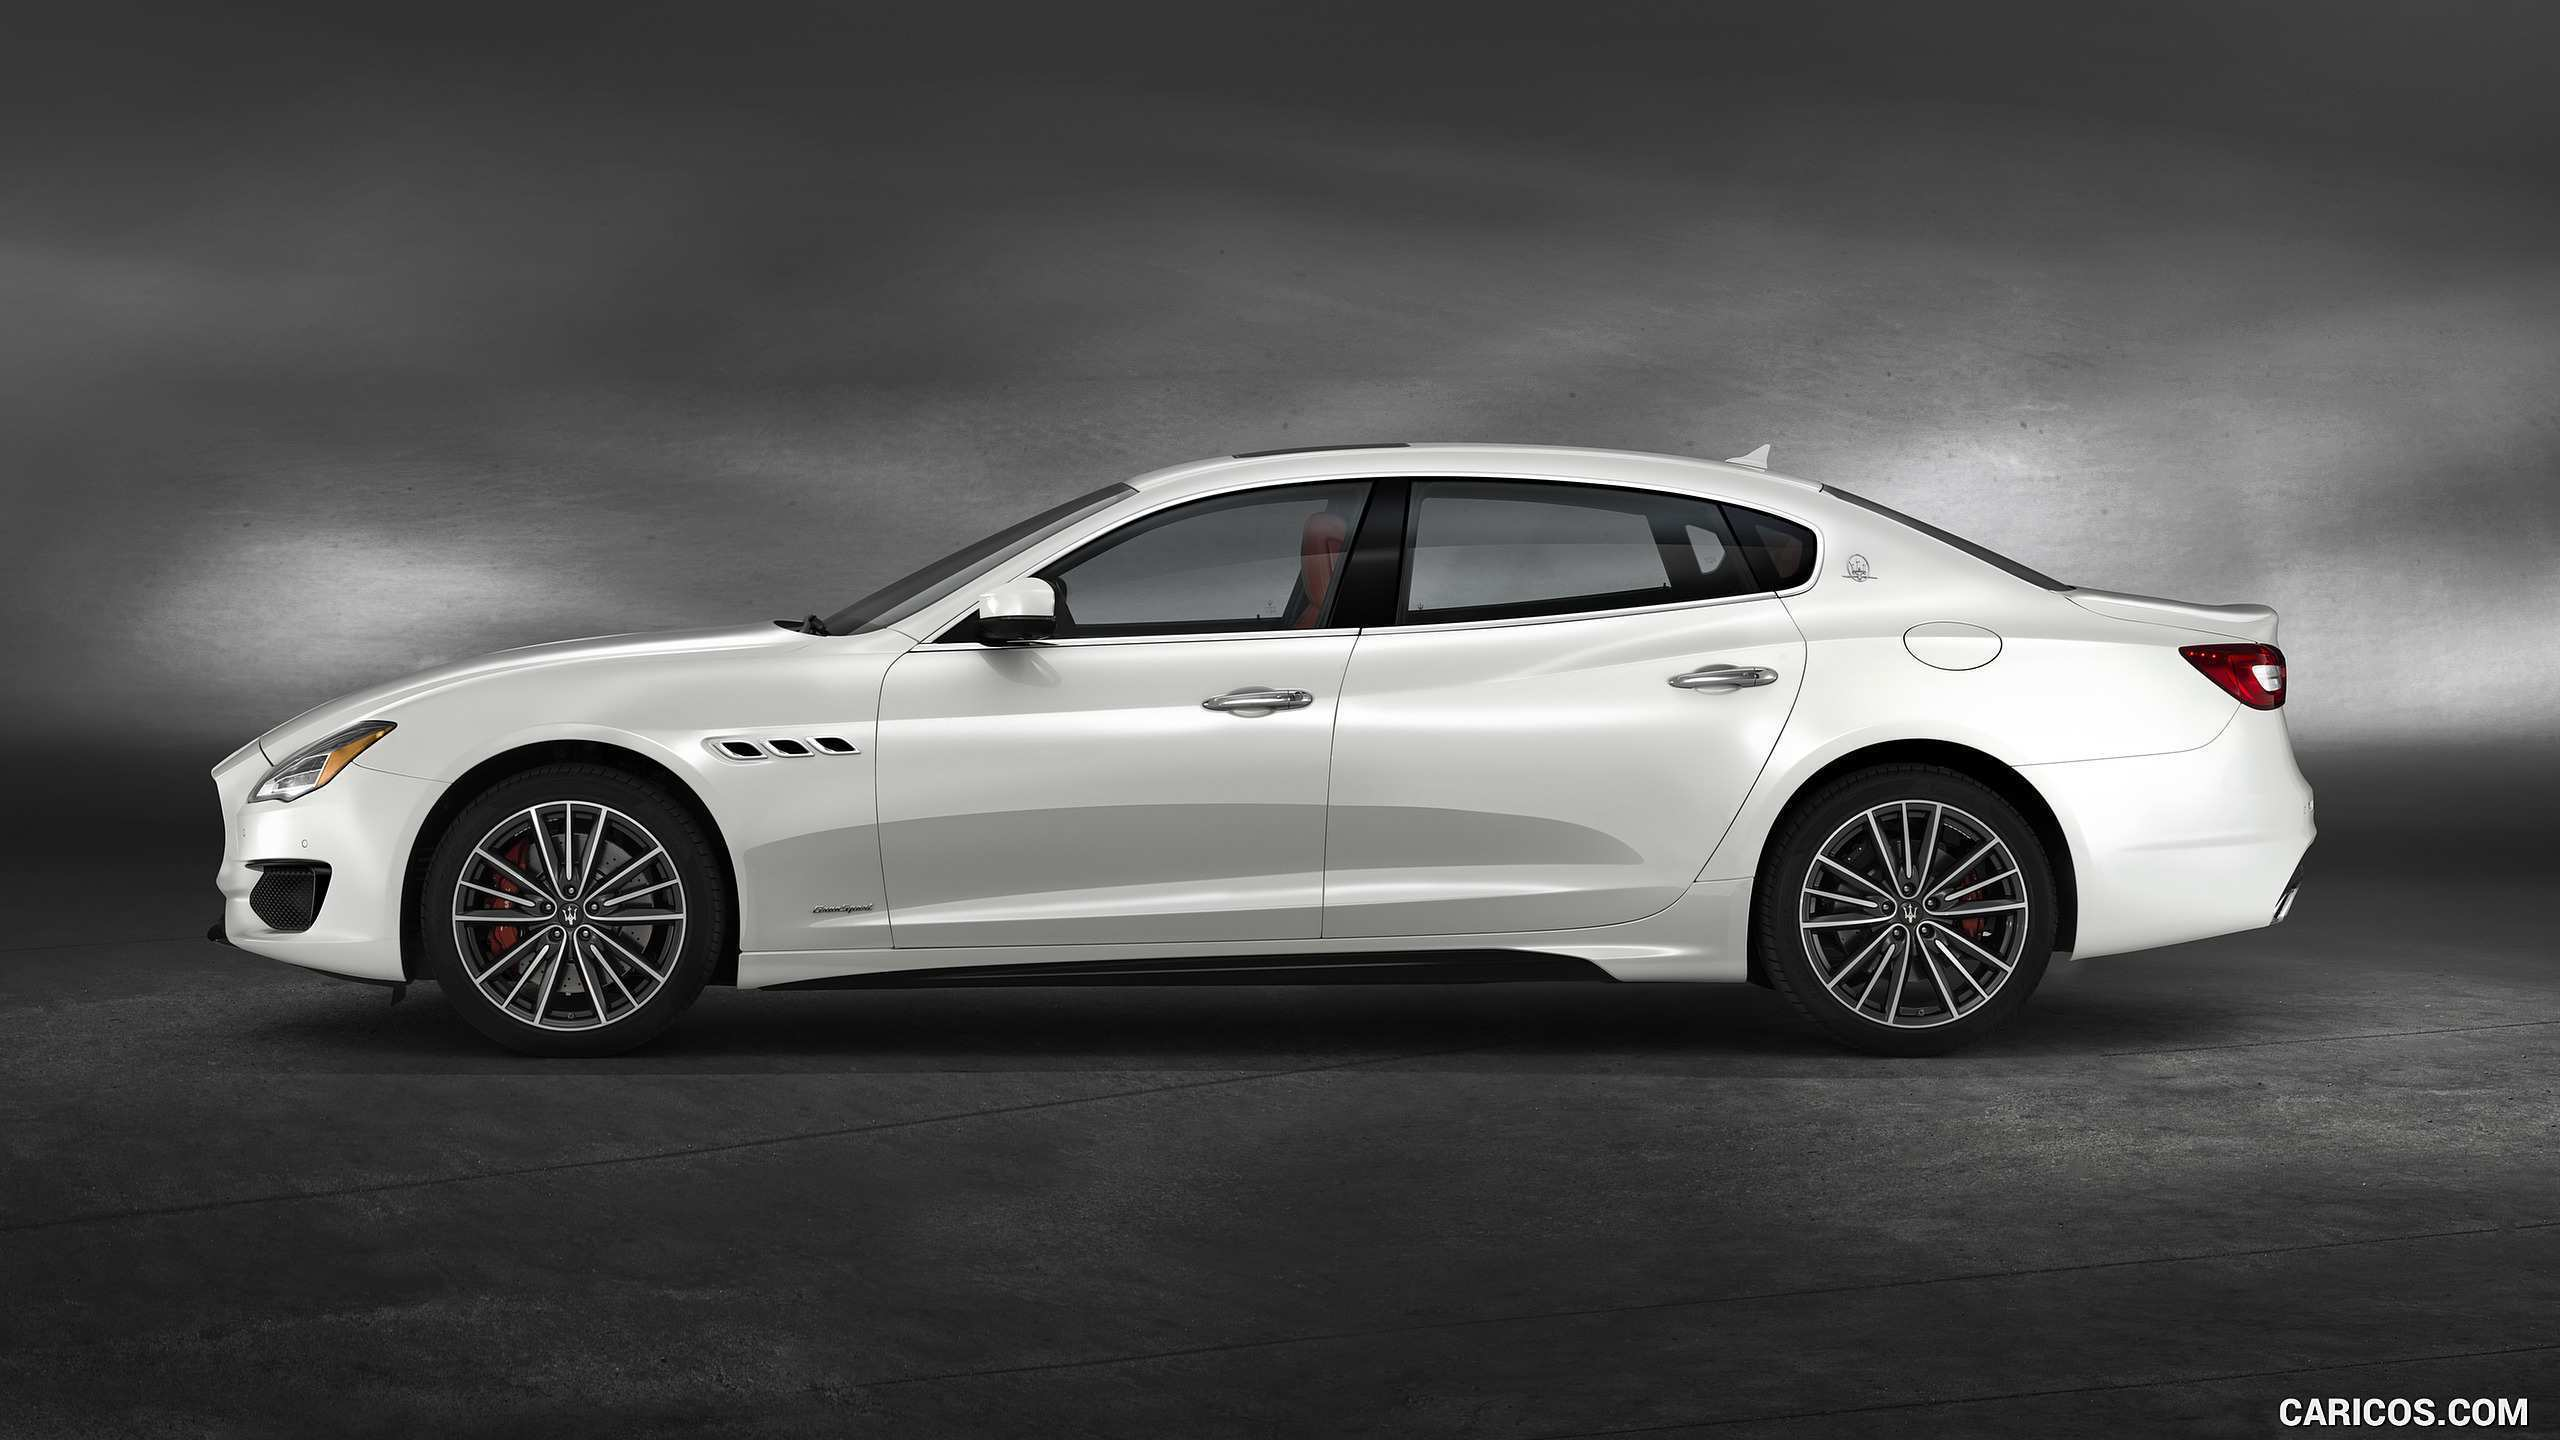 91 New Maserati Quattroporte Gts 2019 Images with Maserati Quattroporte Gts 2019